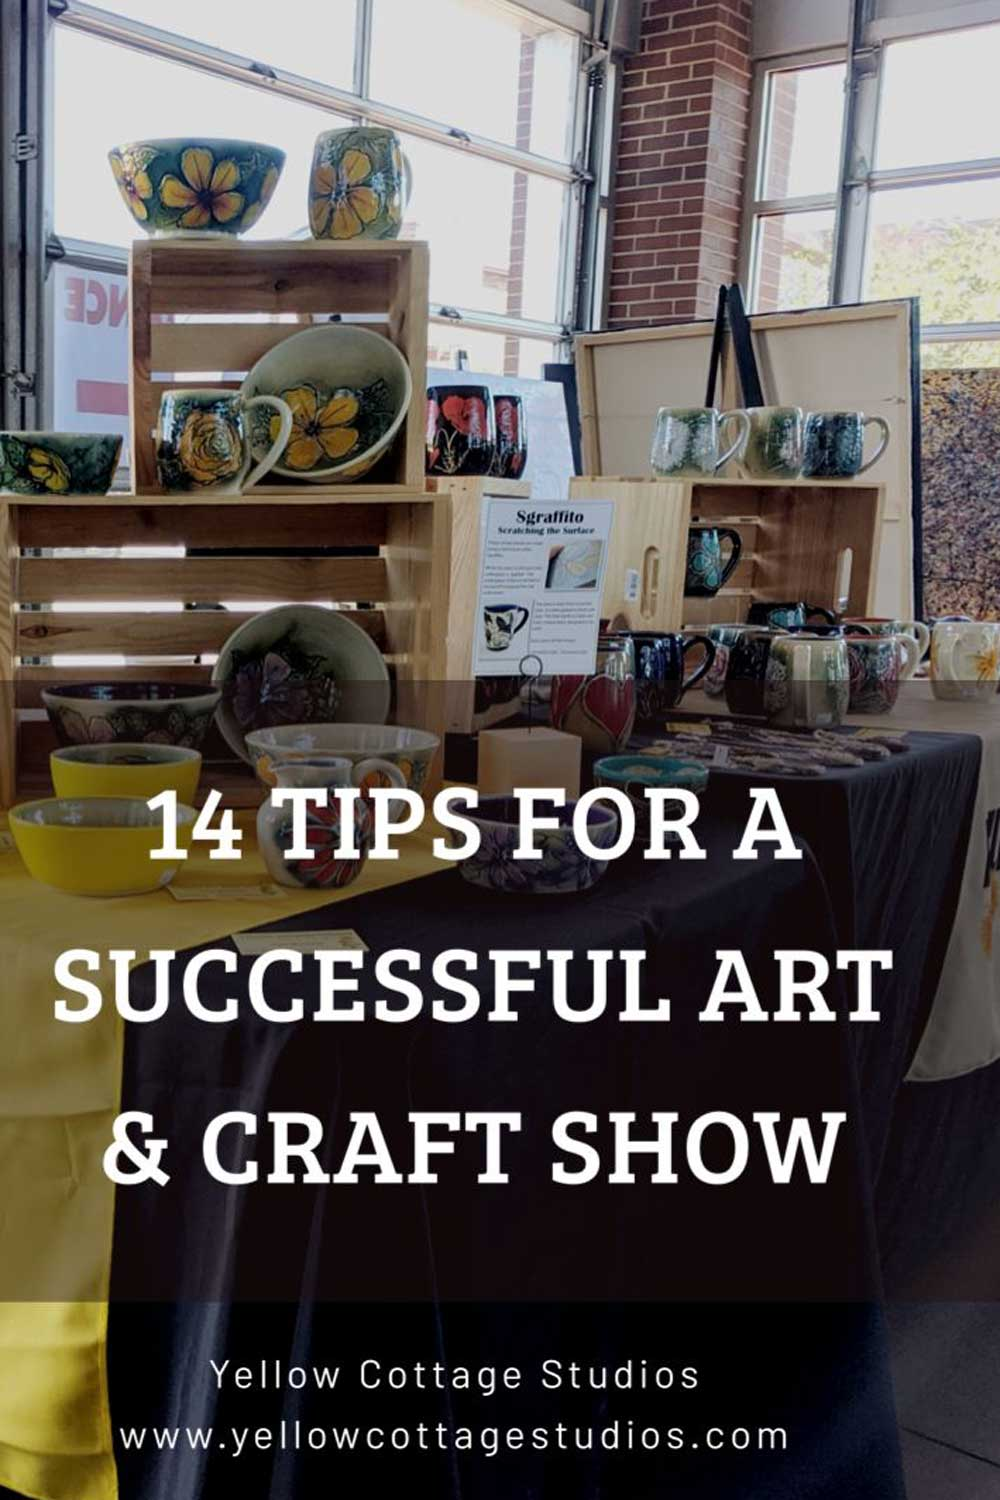 14 tips for a successful Art & Craft Show